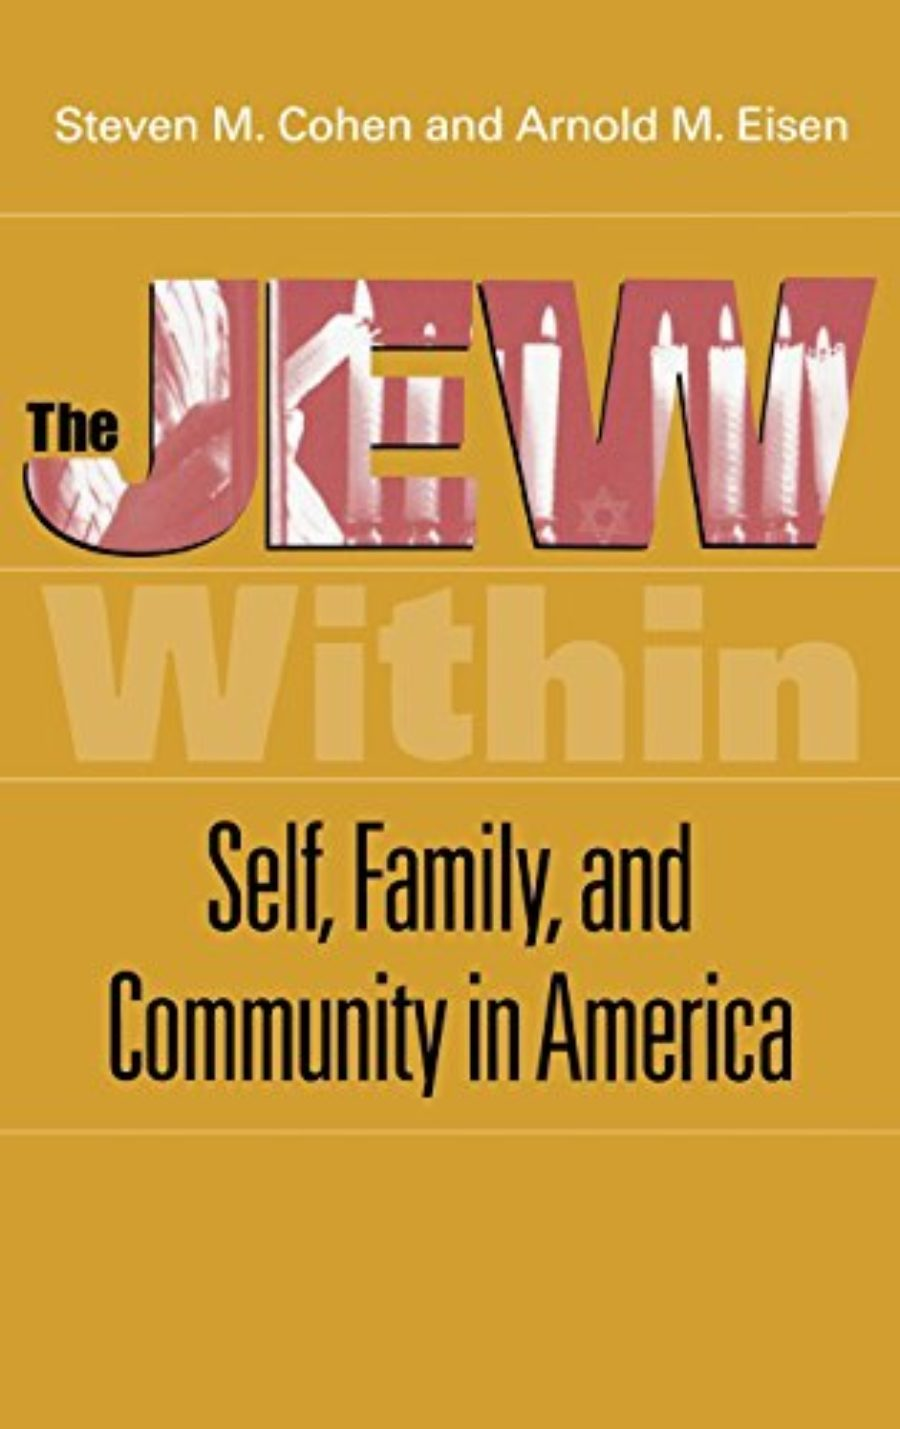 Cover of The Jew Within: Self, Family, and Community in America